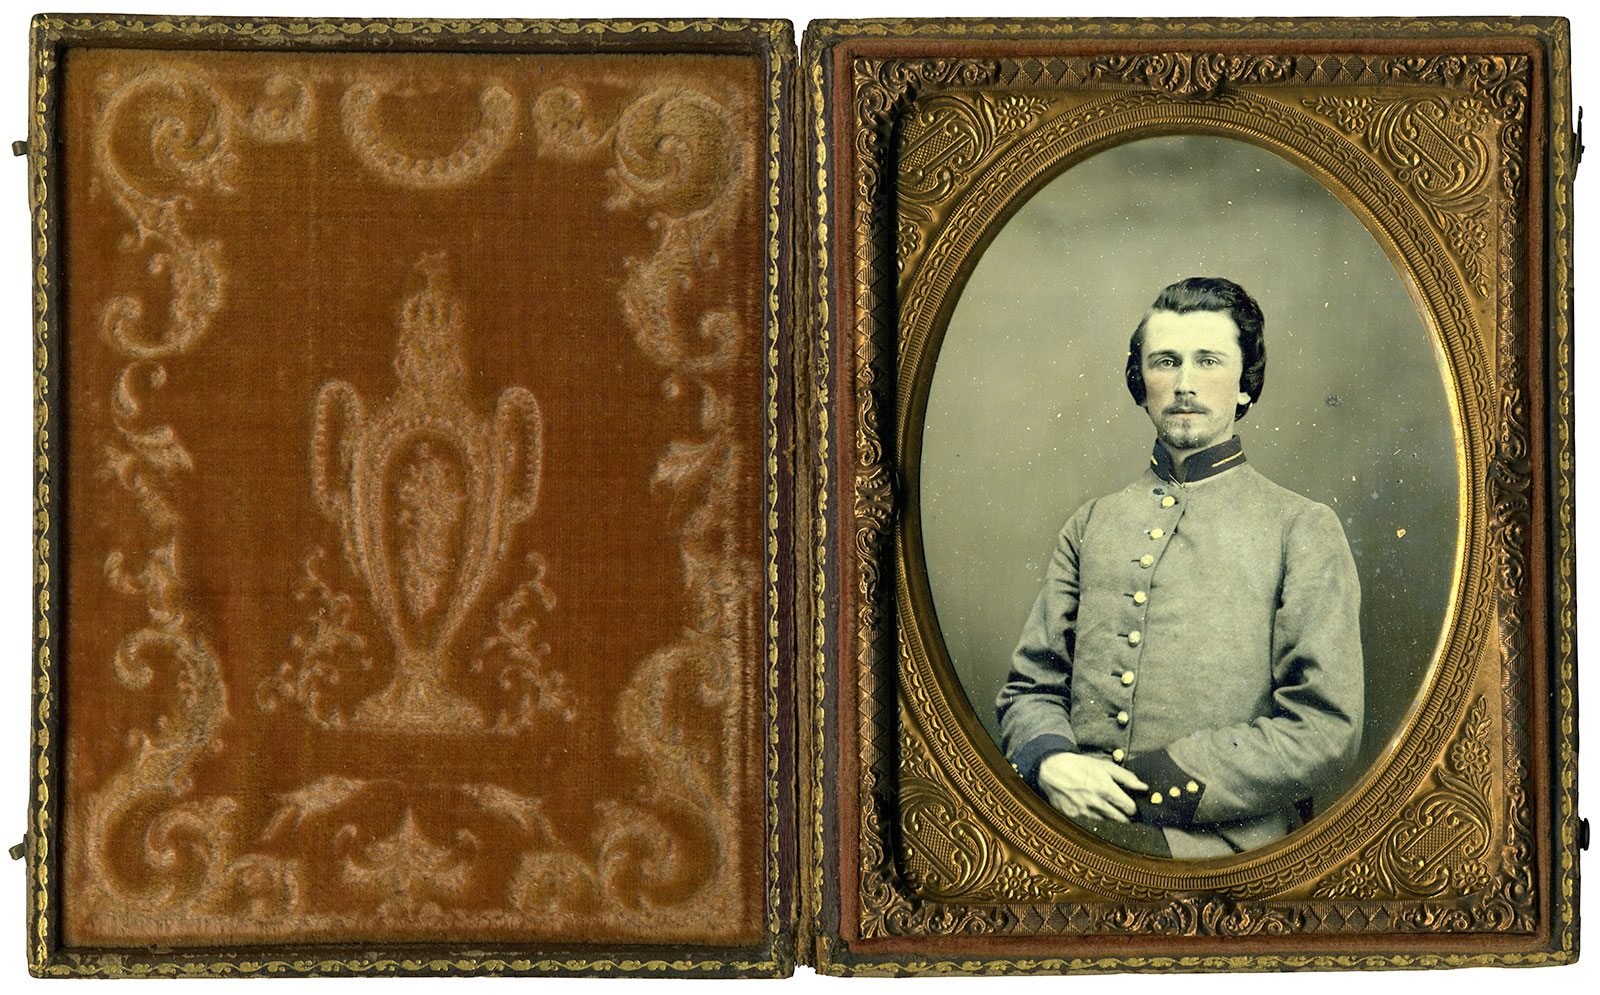 Quarter-plate ruby ambrotype by an anonymous photographer. The Liljenquist Family Collection, Library of Congress.